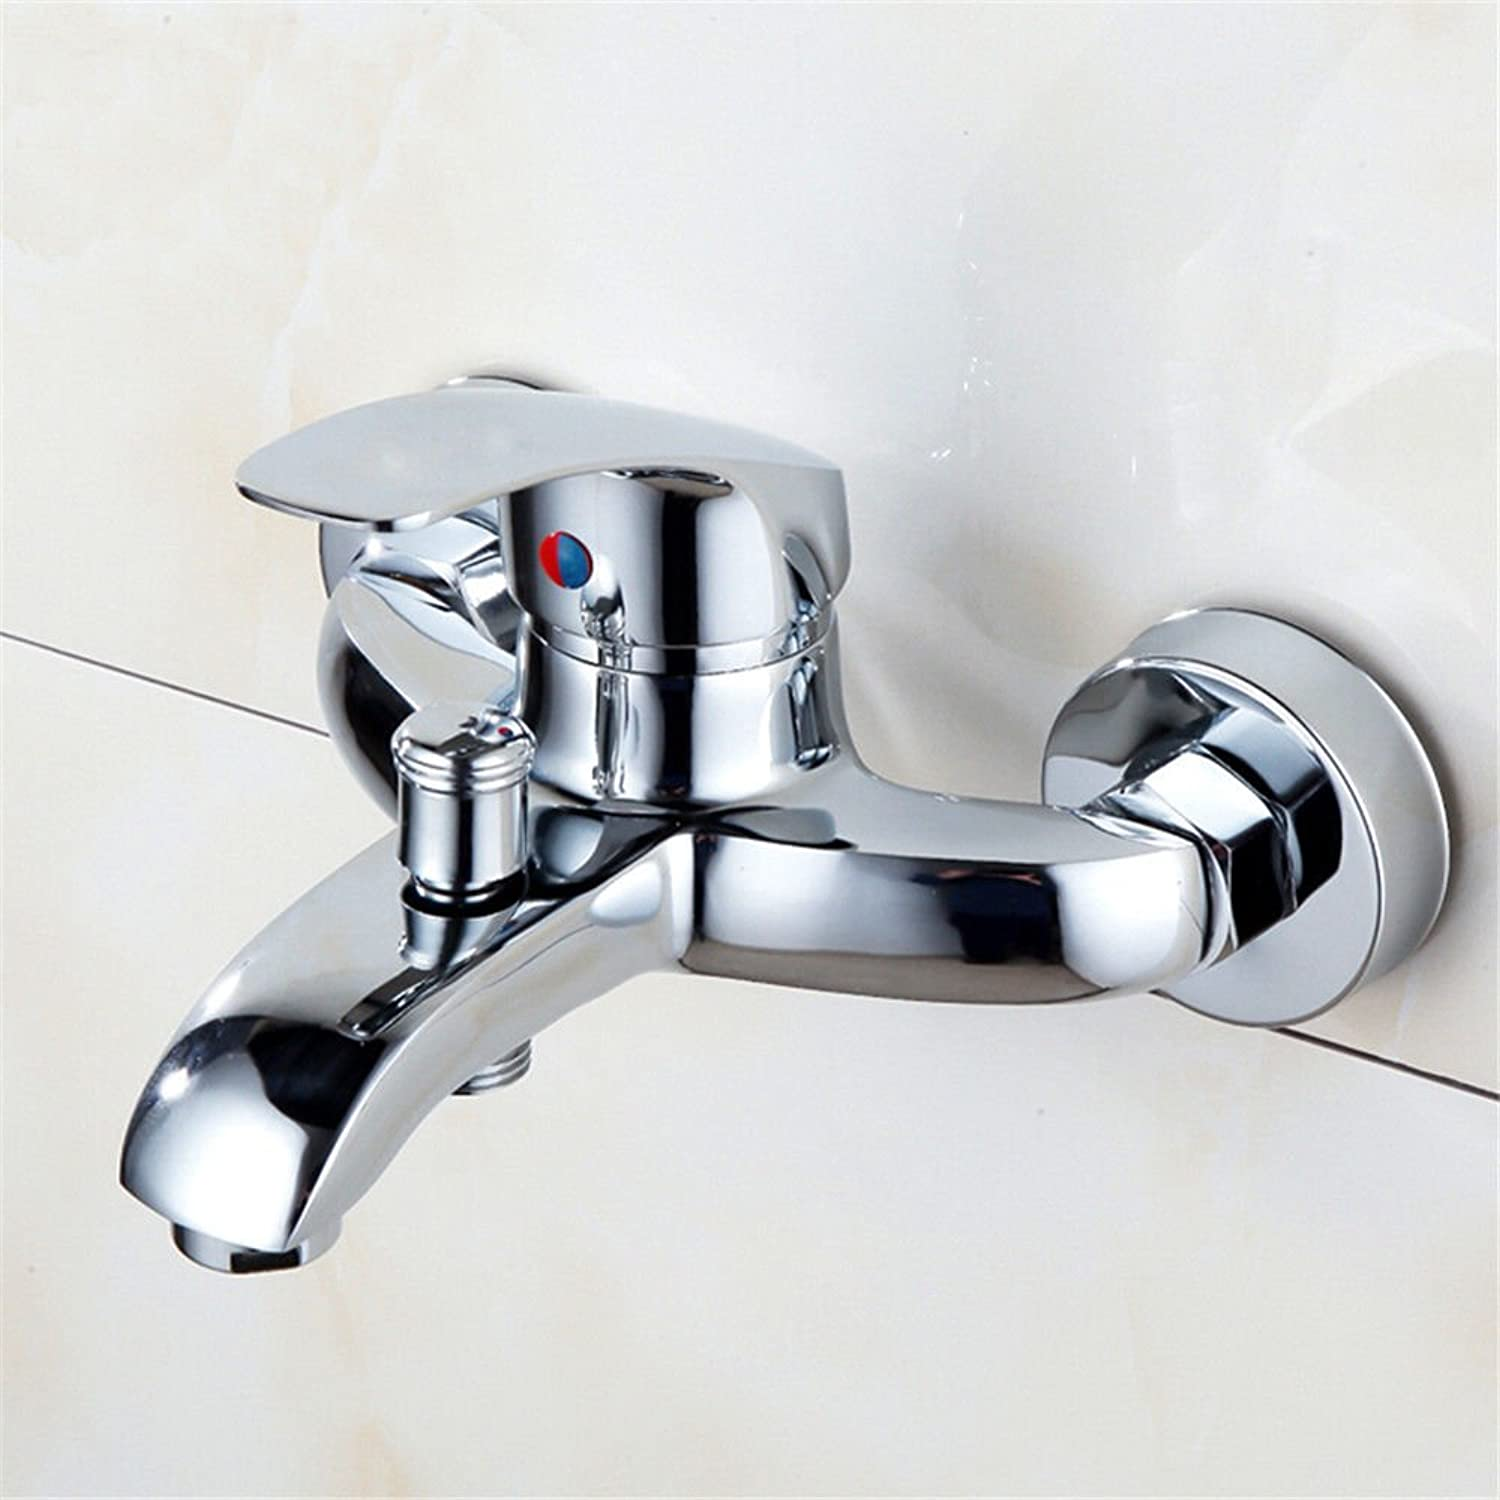 Lalaky Taps Faucet Kitchen Mixer Sink Waterfall Bathroom Mixer Basin Mixer Tap for Kitchen Bathroom and Washroom Copper Mixing Valve